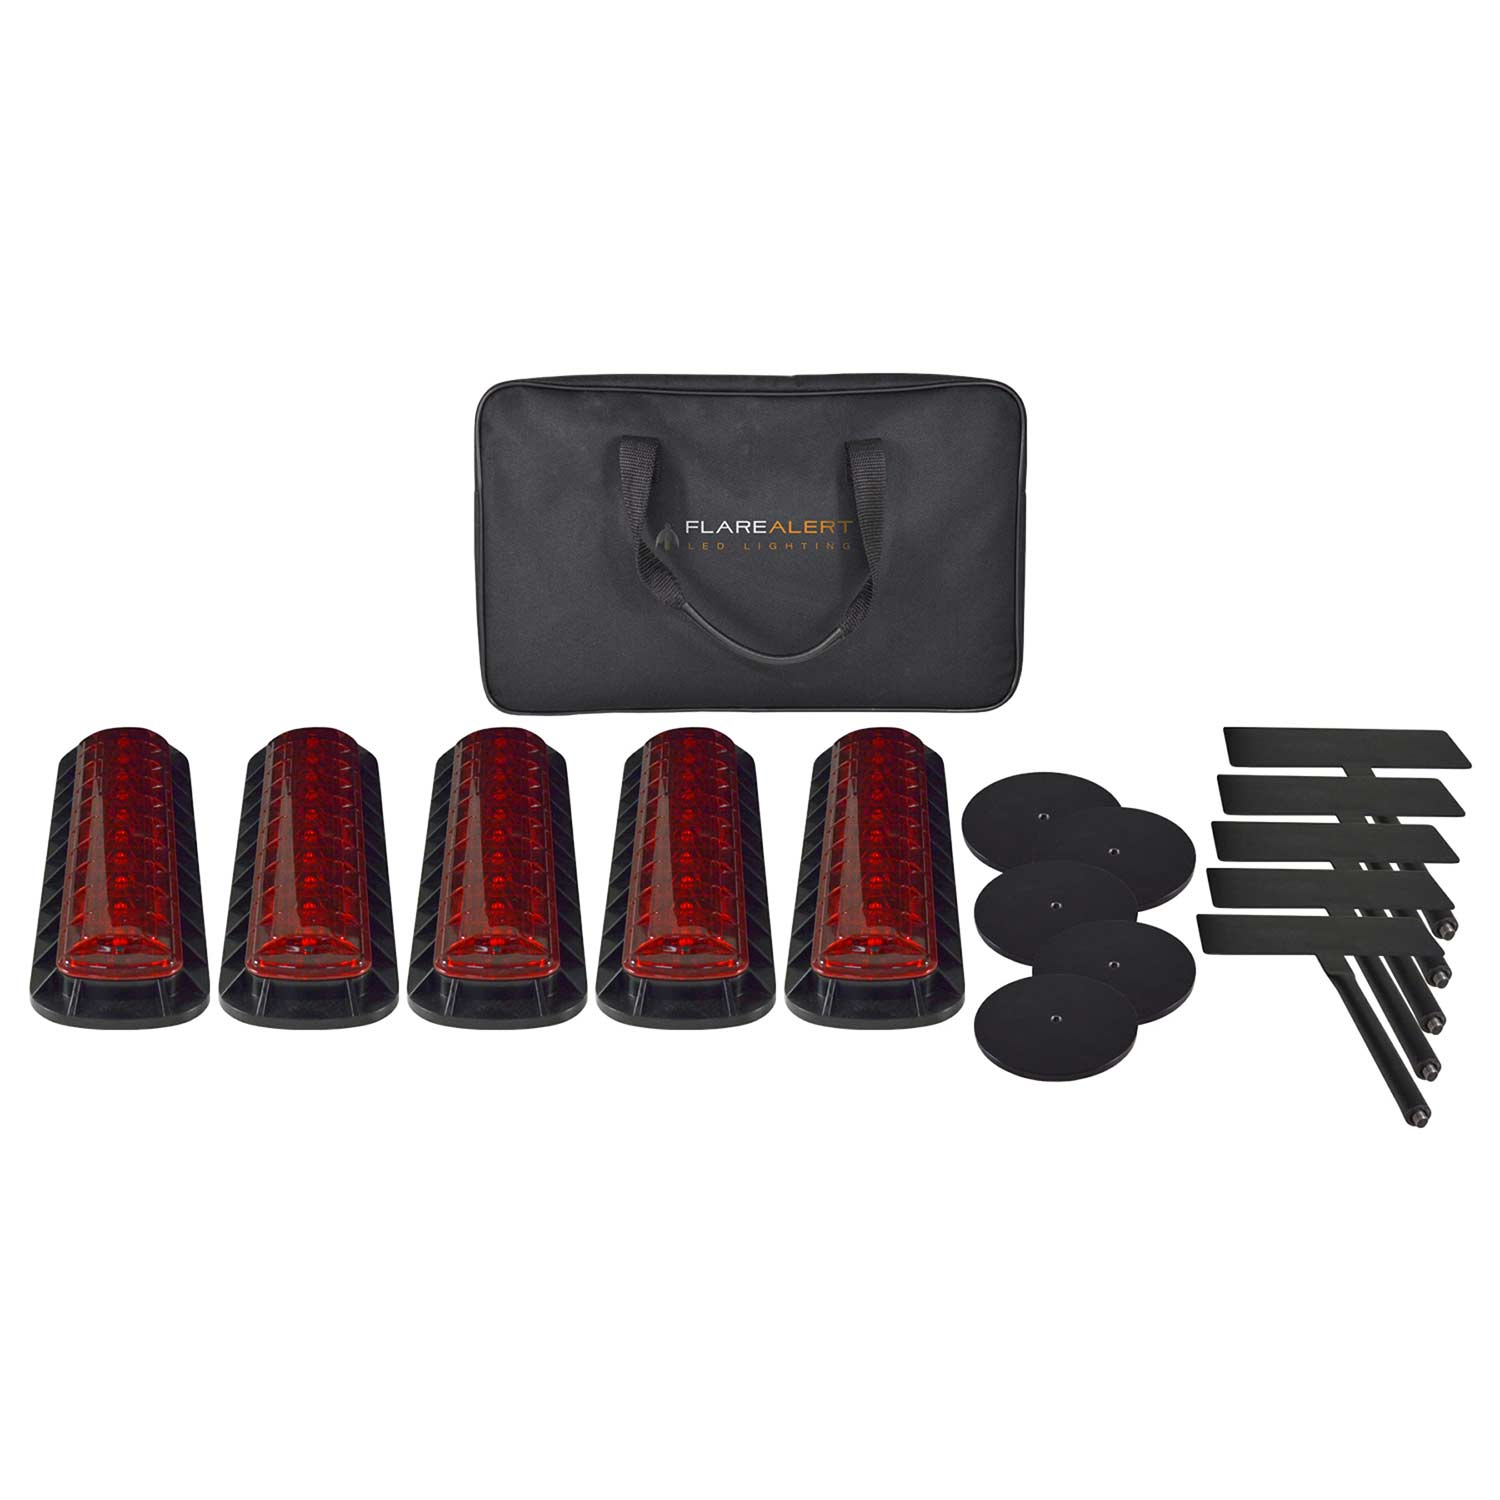 FlareAlert Chaselight 5-Pack Kit